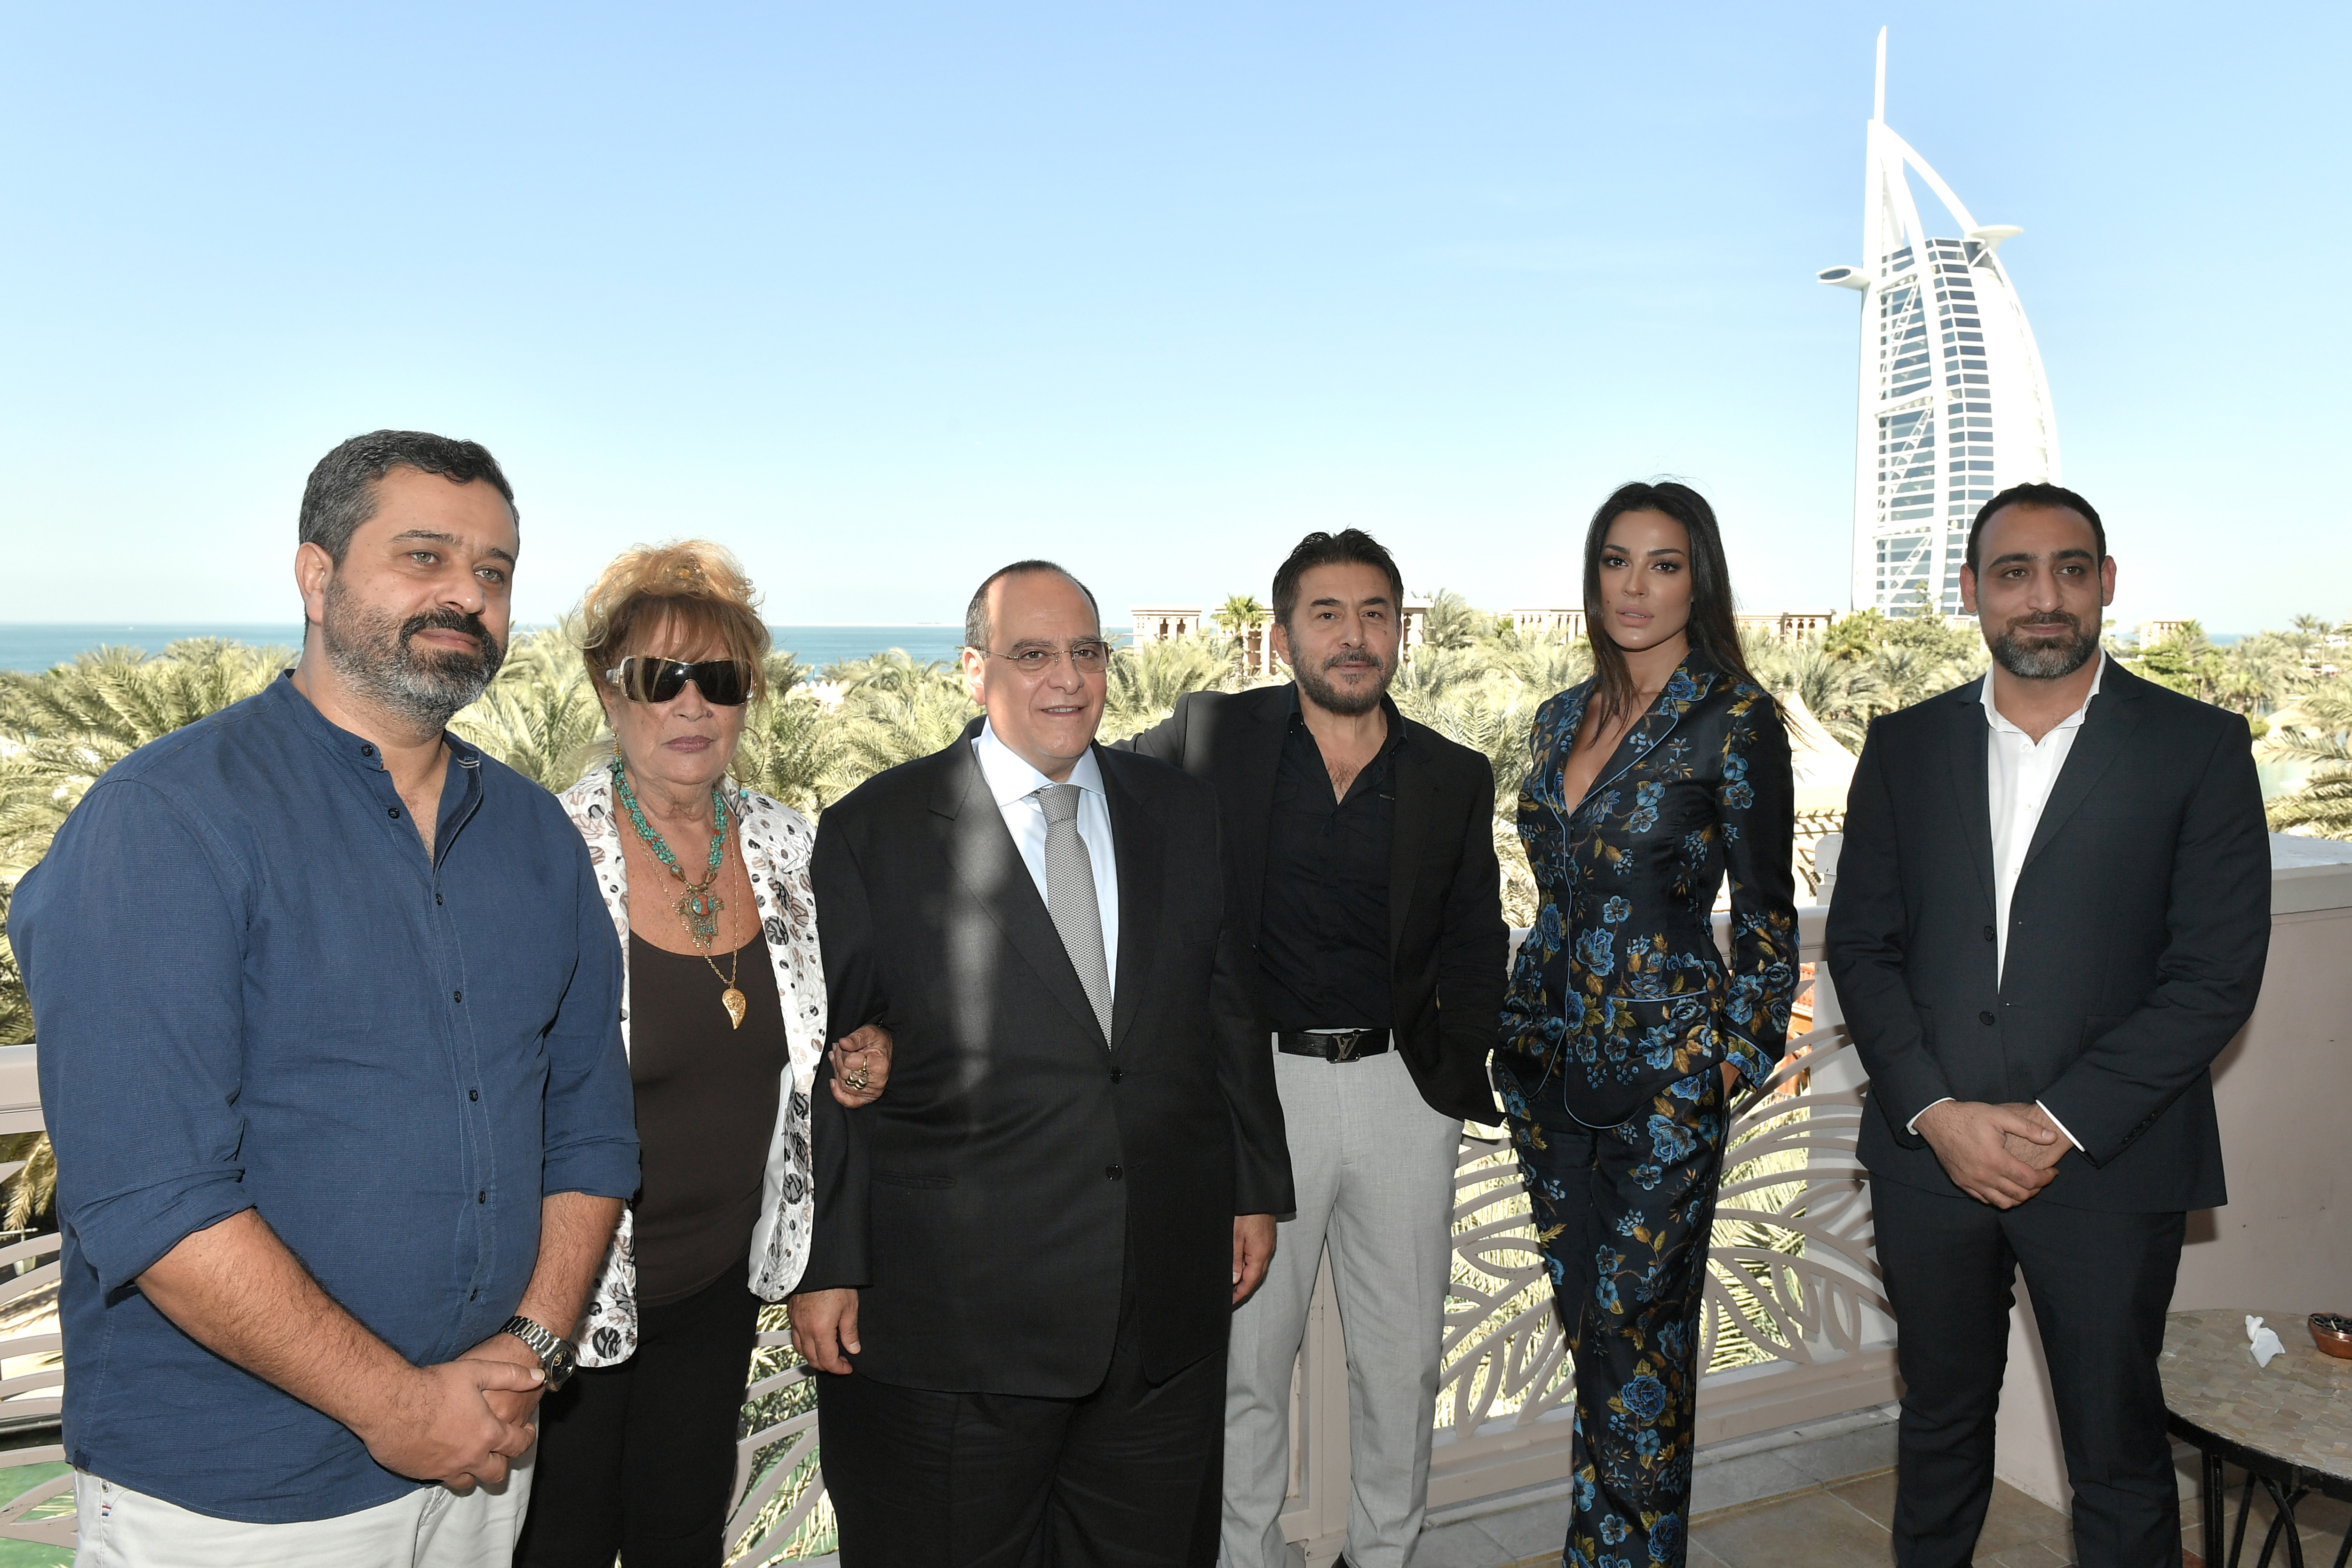 Dubai: Lebanon's Cedars Art Production to Produce High-End Shows for Potential OTT Play (EXCLUSIVE)